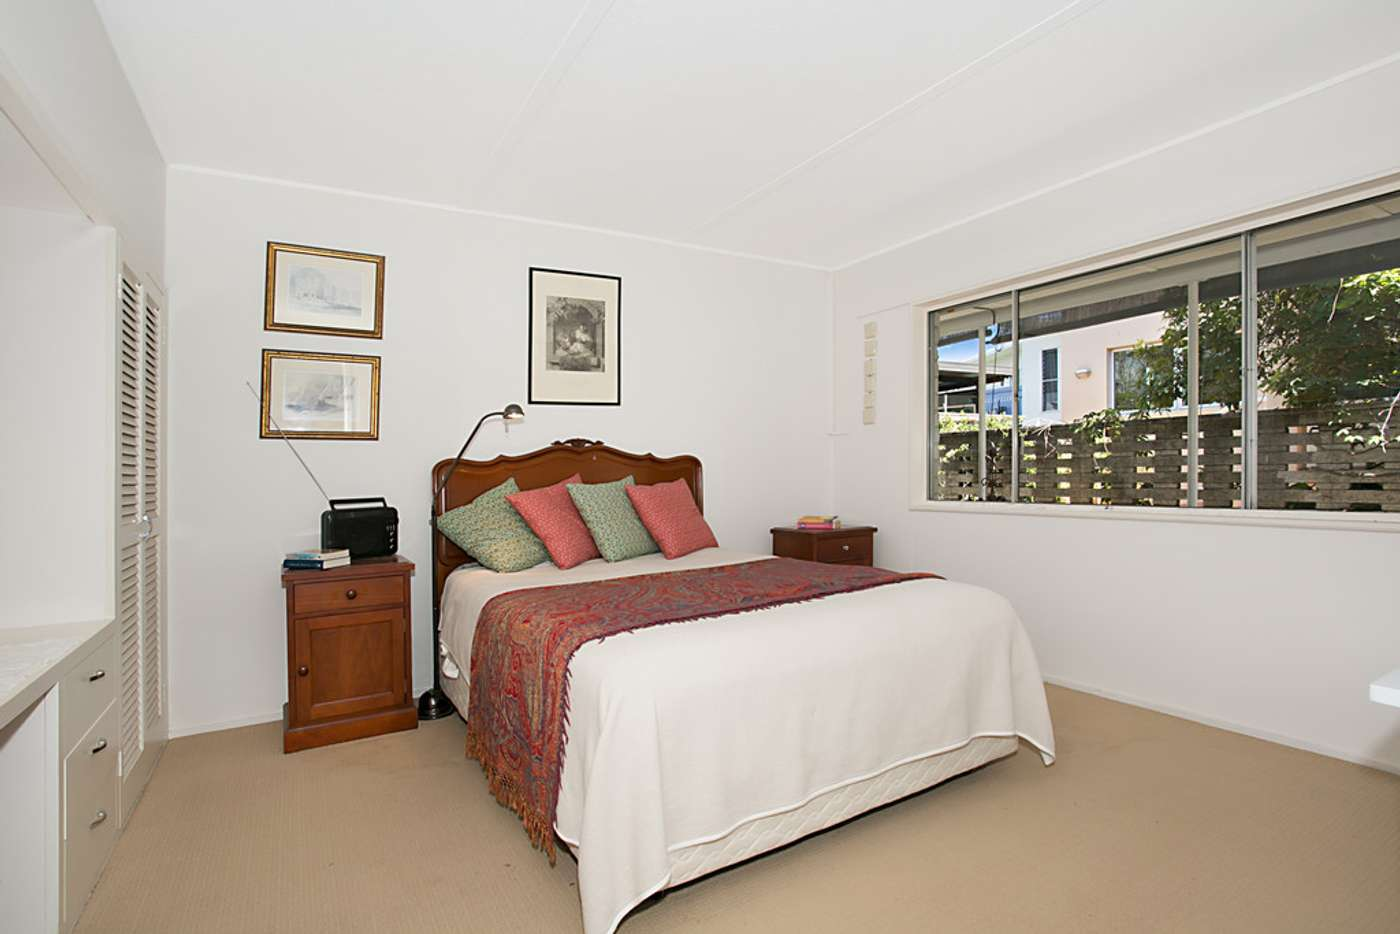 Fifth view of Homely house listing, 103 Petrel Avenue, Mermaid Beach QLD 4218